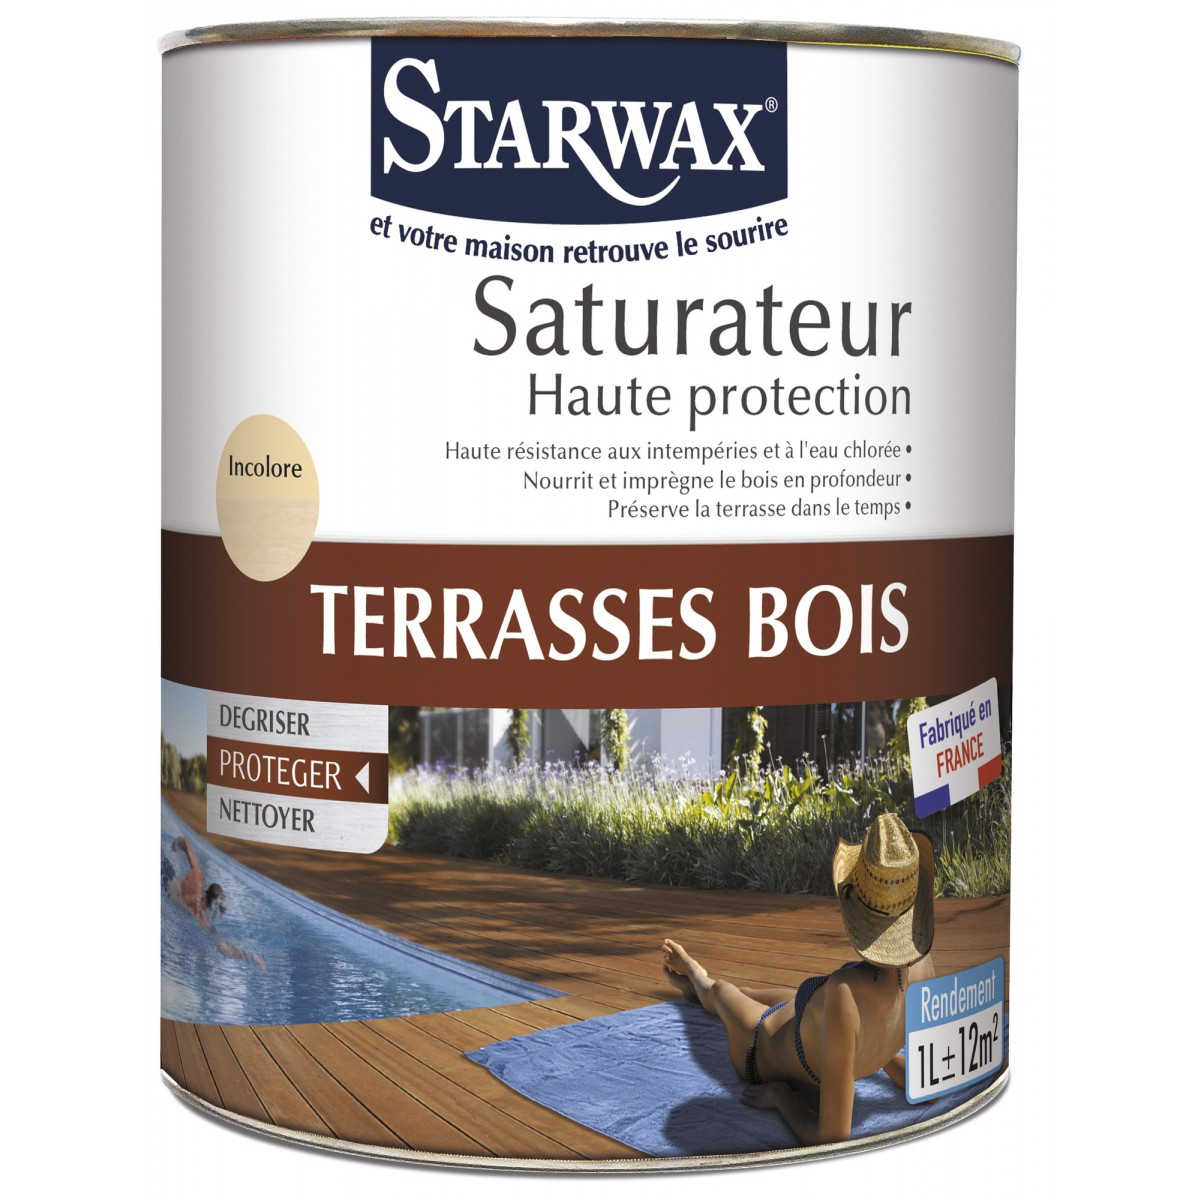 protection terrasses bois starwax bo te 1 l de saturateur 1066100 mon magasin g n ral. Black Bedroom Furniture Sets. Home Design Ideas